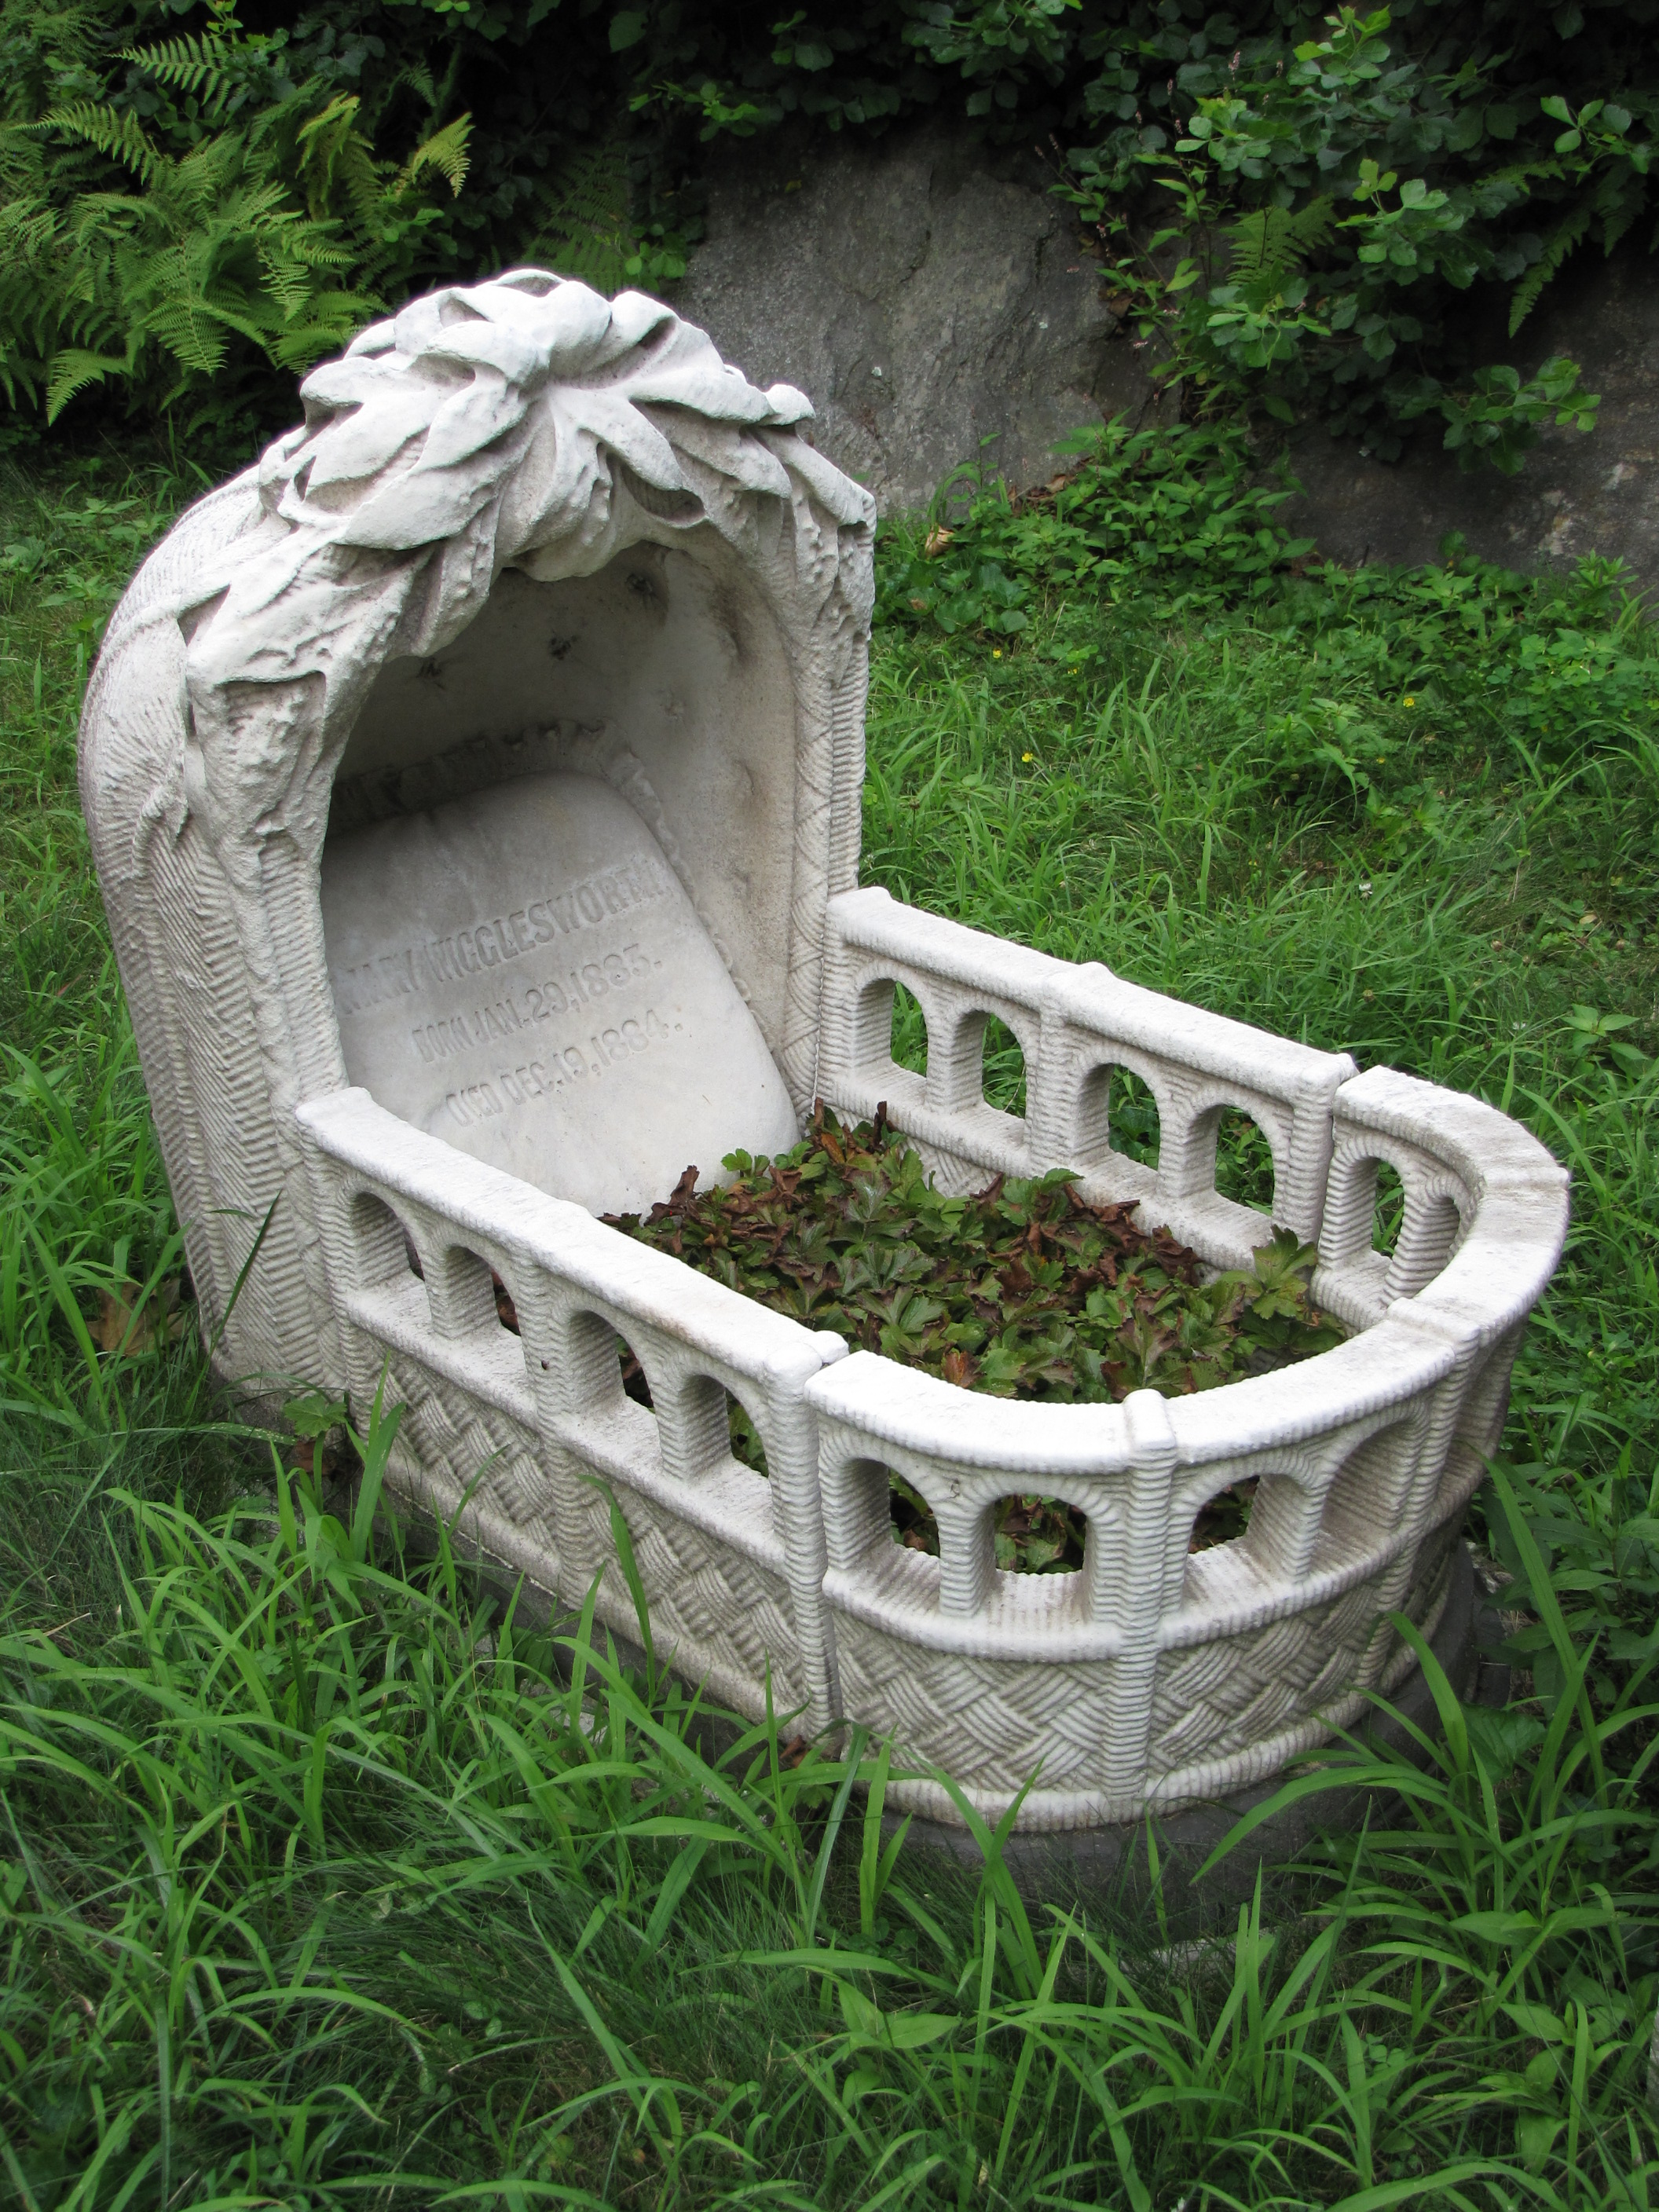 An Empty Bassinet Gravely Speaking